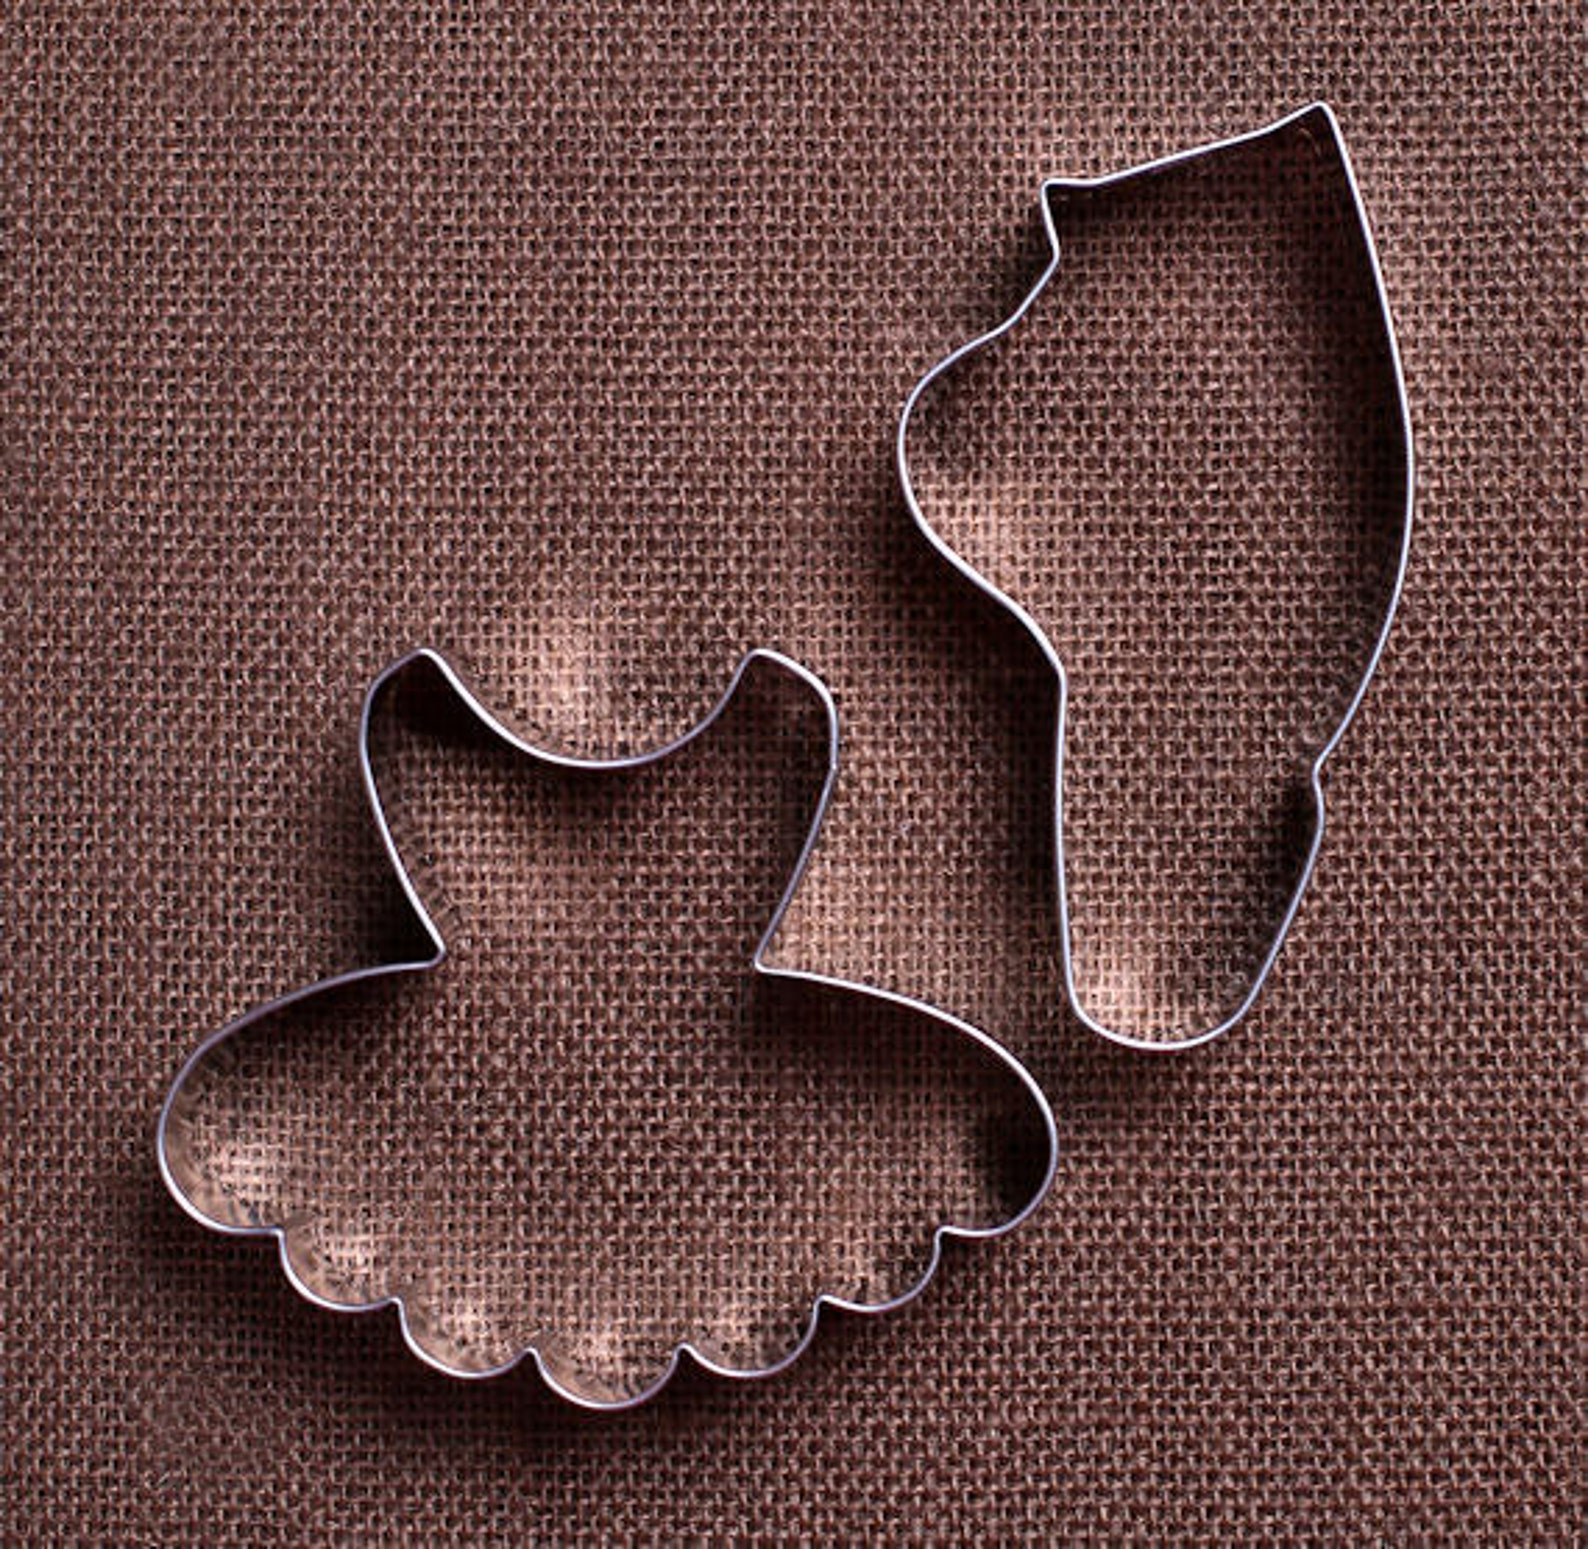 ballerina cookie cutter set, tutu cookie cutter, ballet shoe cookie cutter, ballet cookie cutters, sugar cookie cutters, biscuit